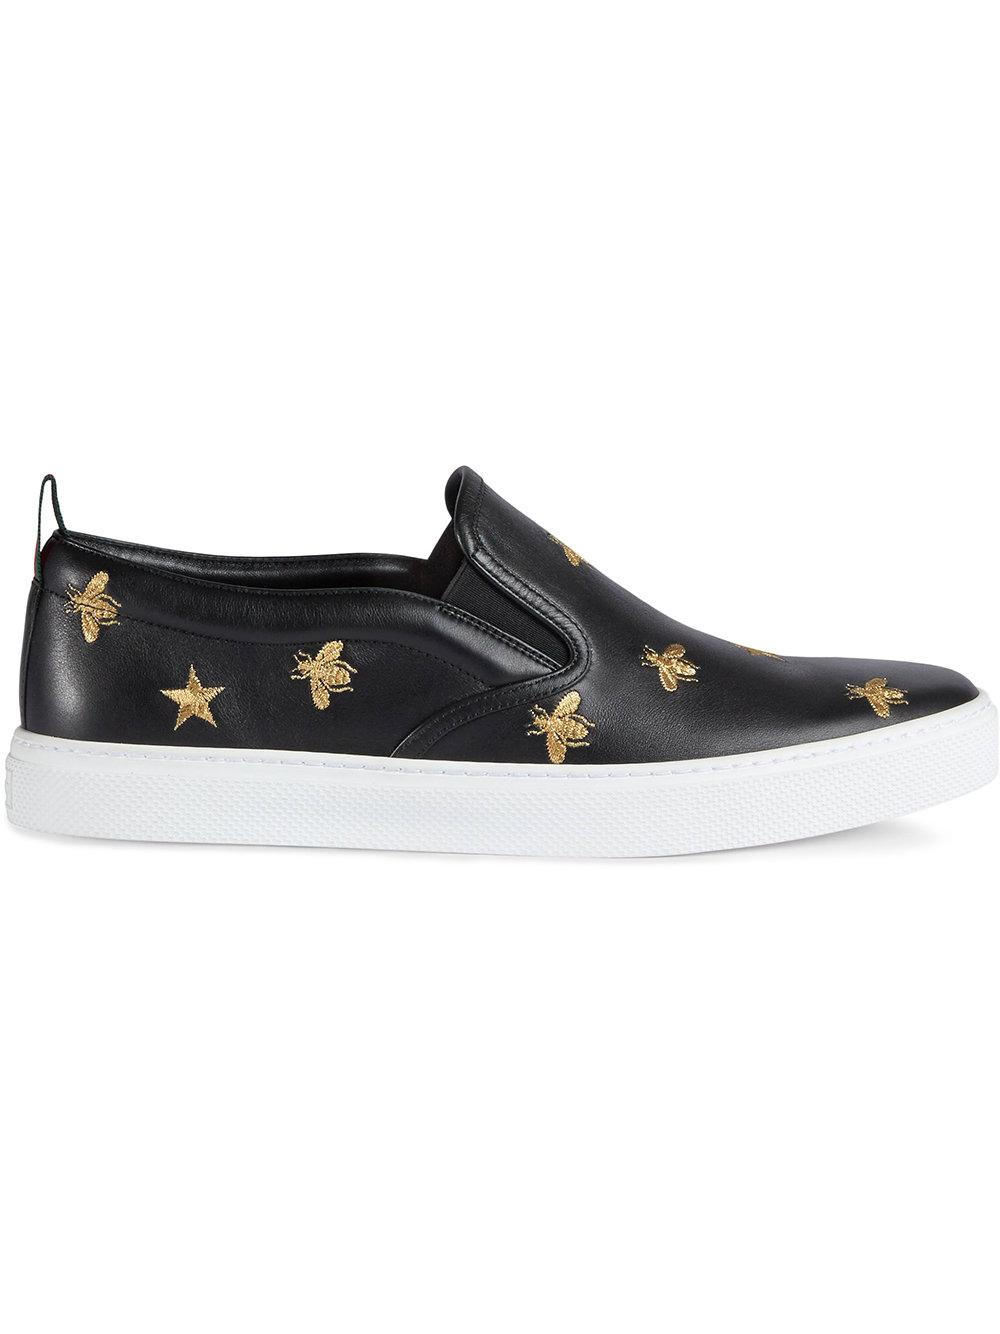 4a9f63a4a8a Gucci Men s Dublin Bee   Star Embroidered Leather Slip-On Sneakers ...